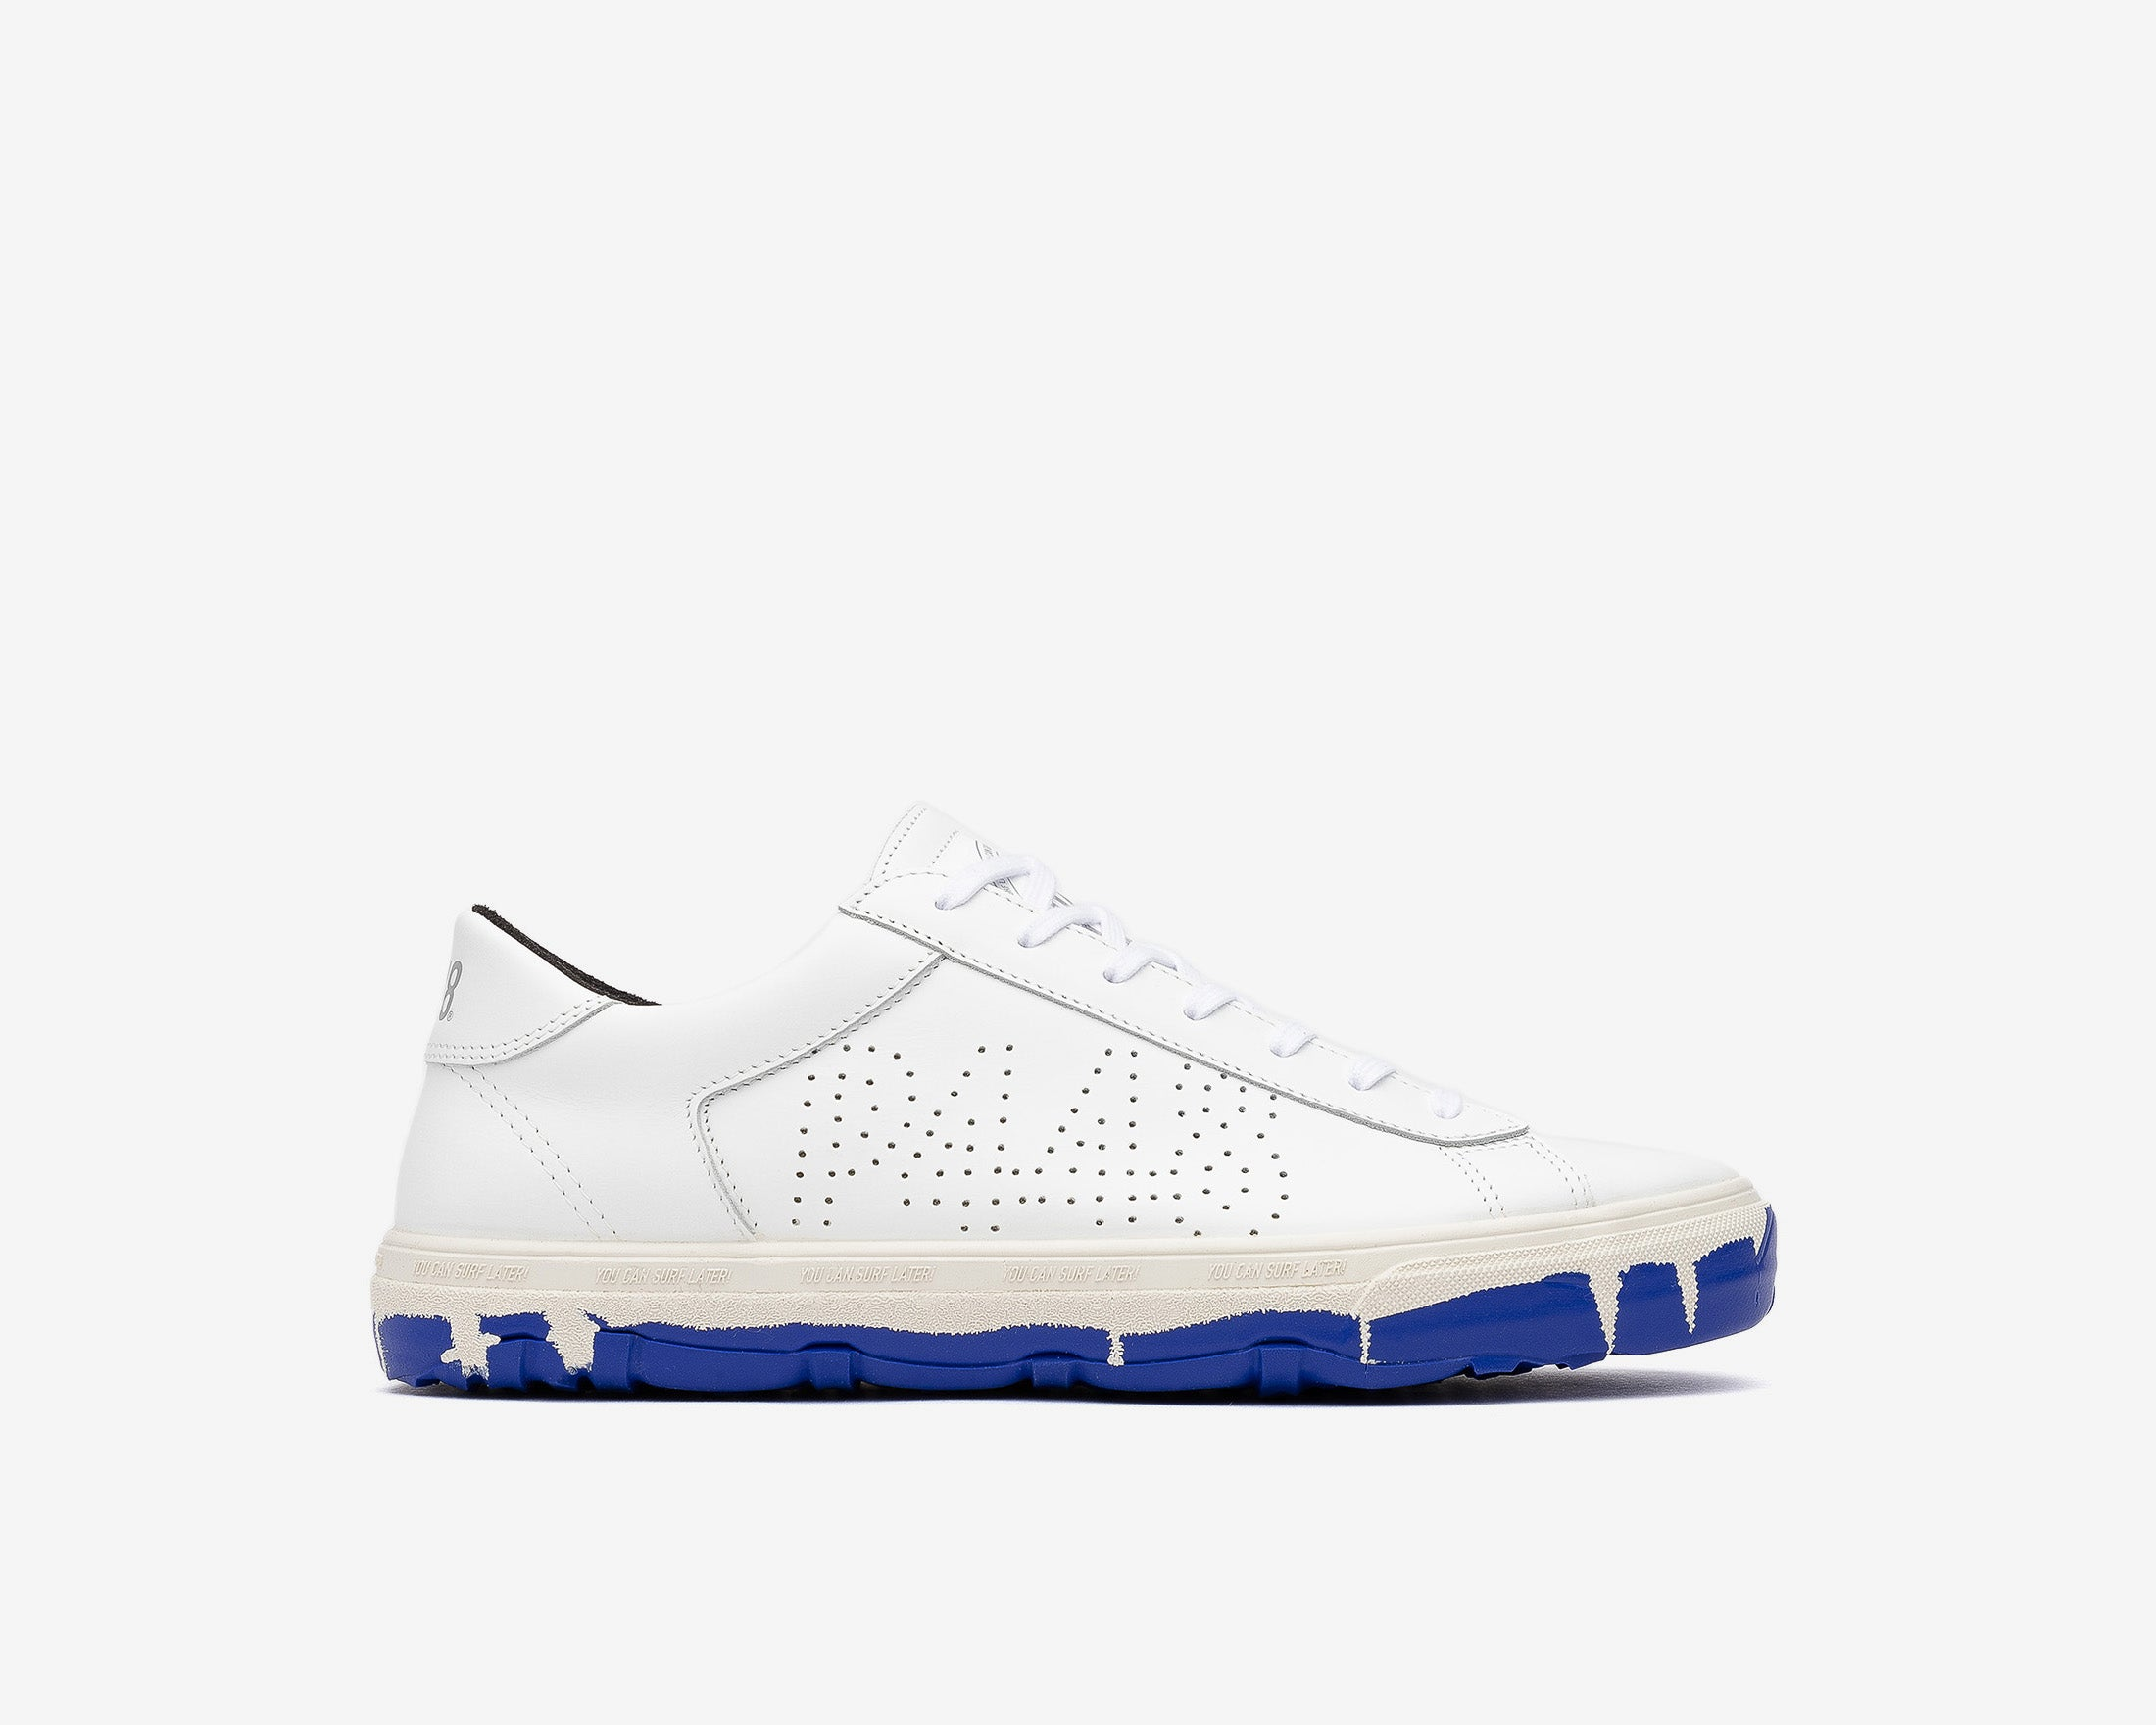 Y.C.S.L. Vibram Low-Top Sneaker in White/Royal - Profile